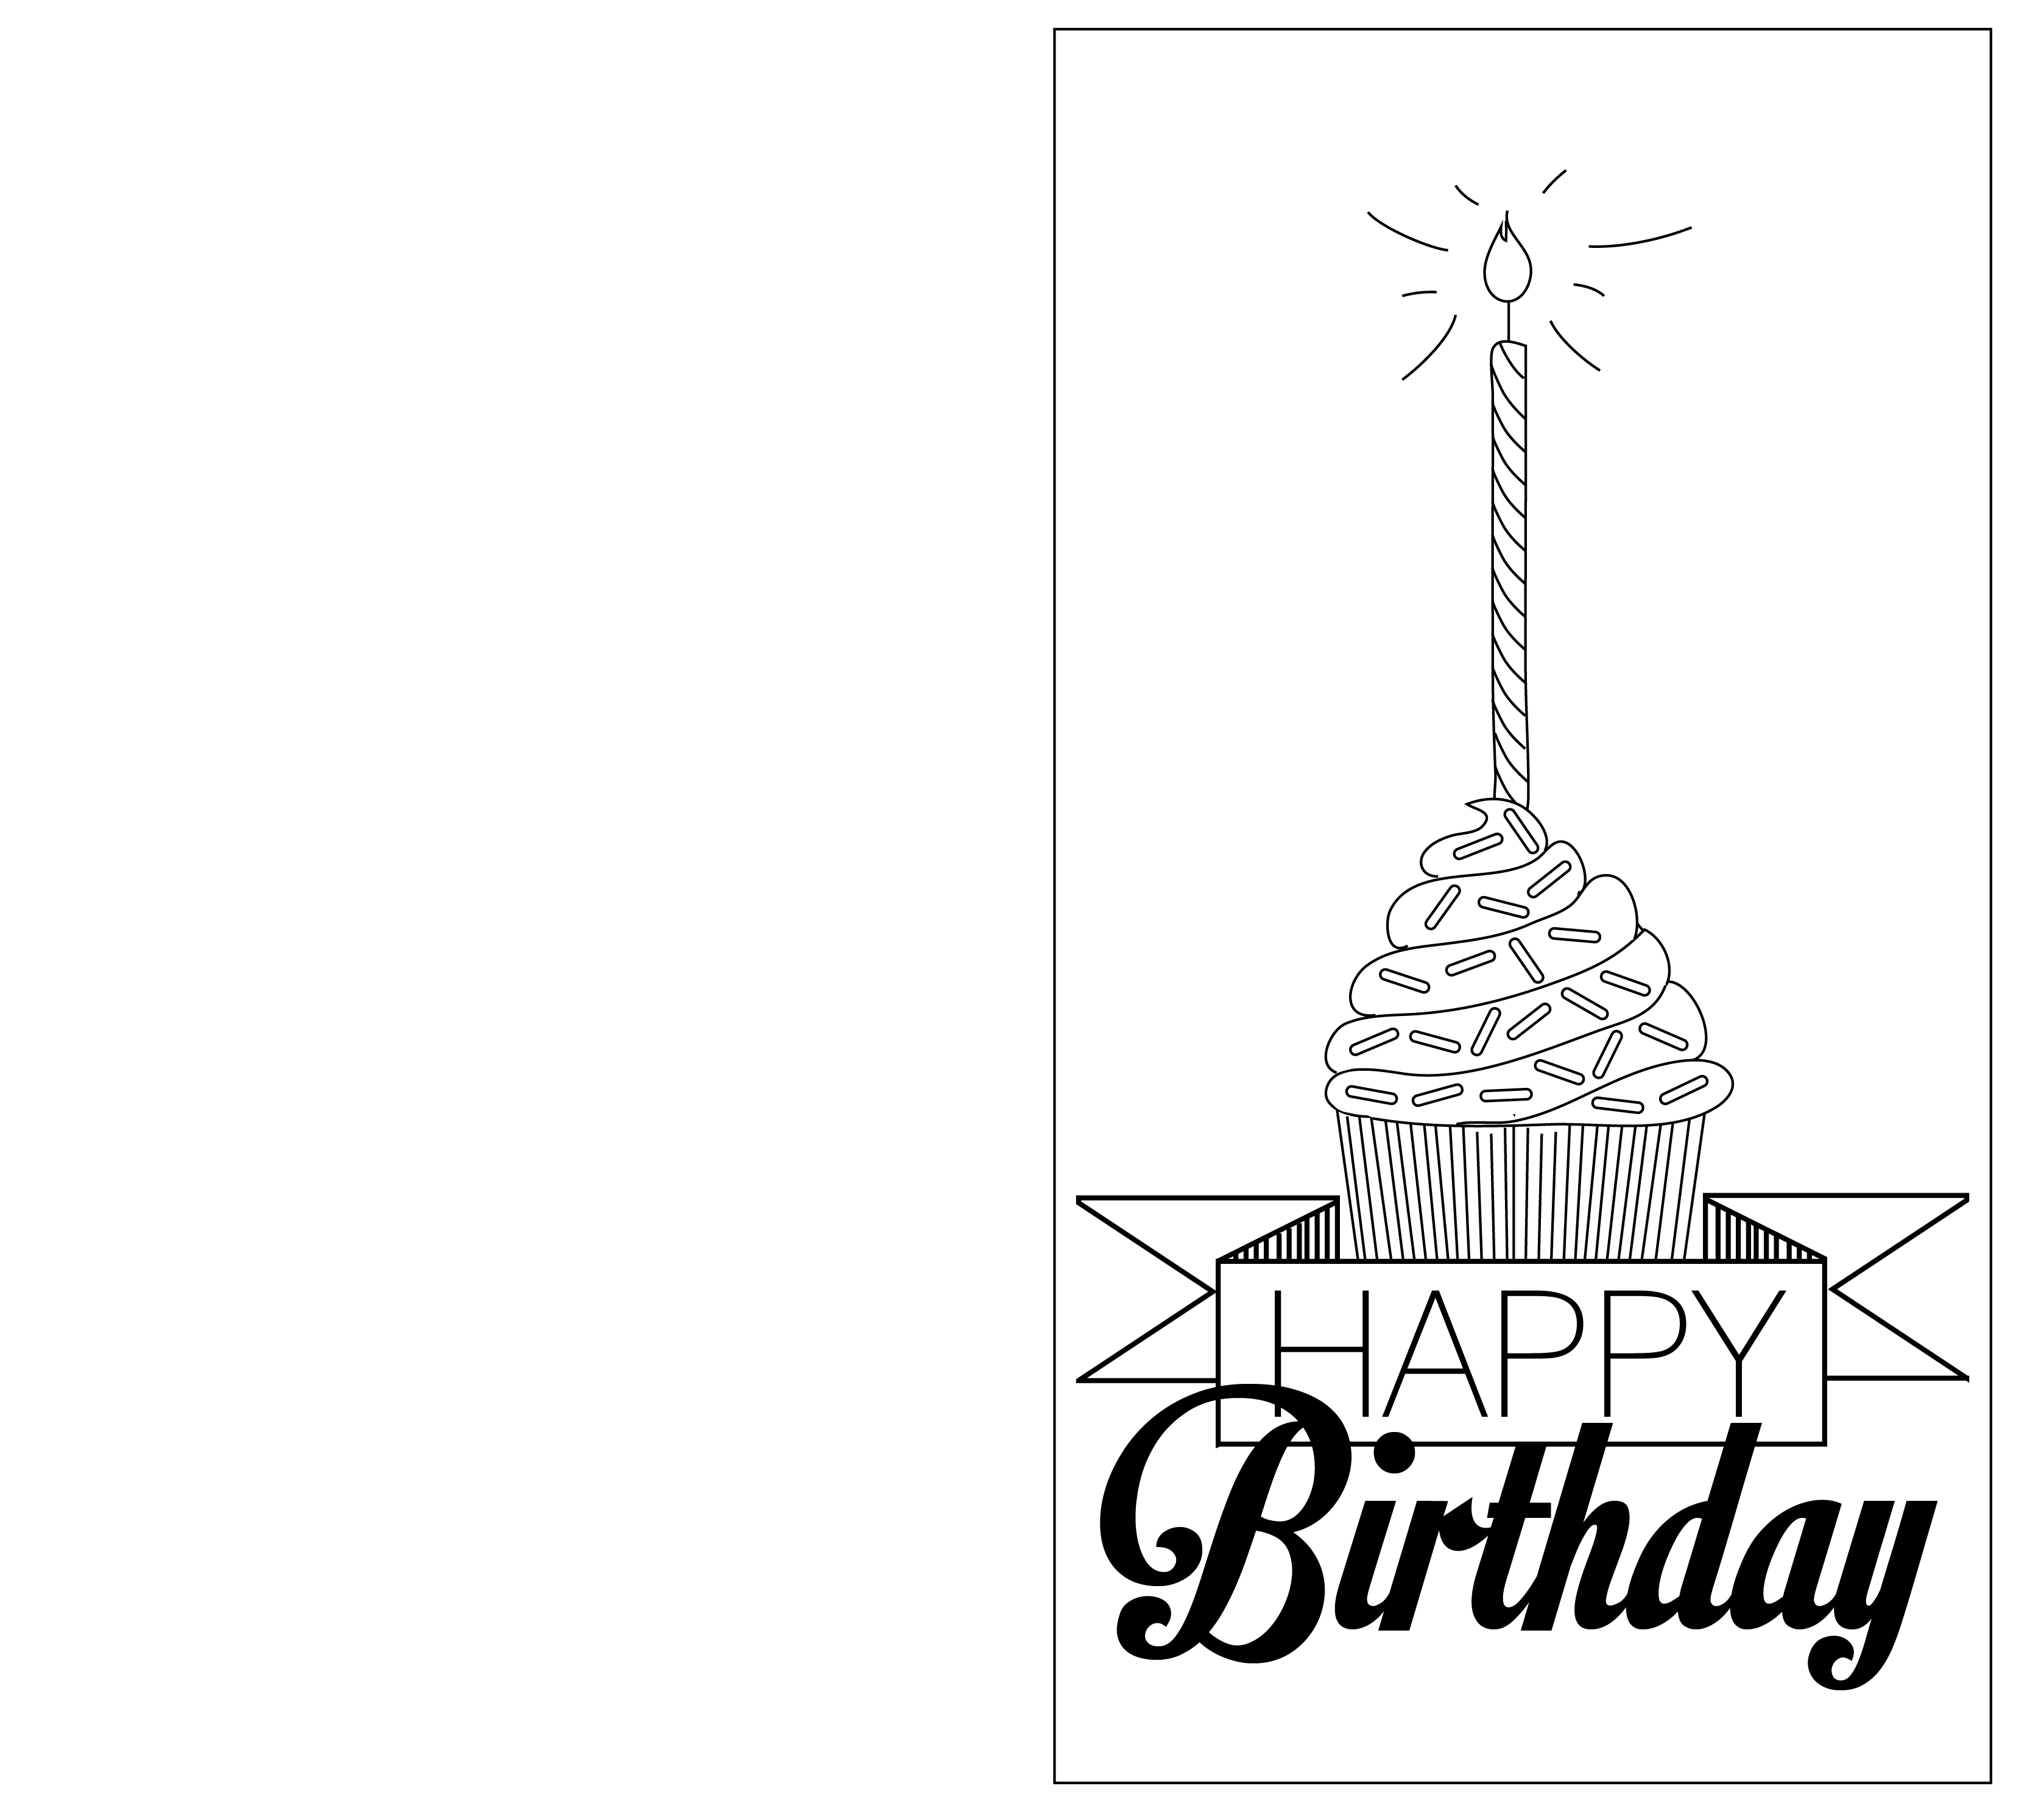 coloring template birthday card printable happy birthday grandma coloring page coloring home coloring printable template card birthday